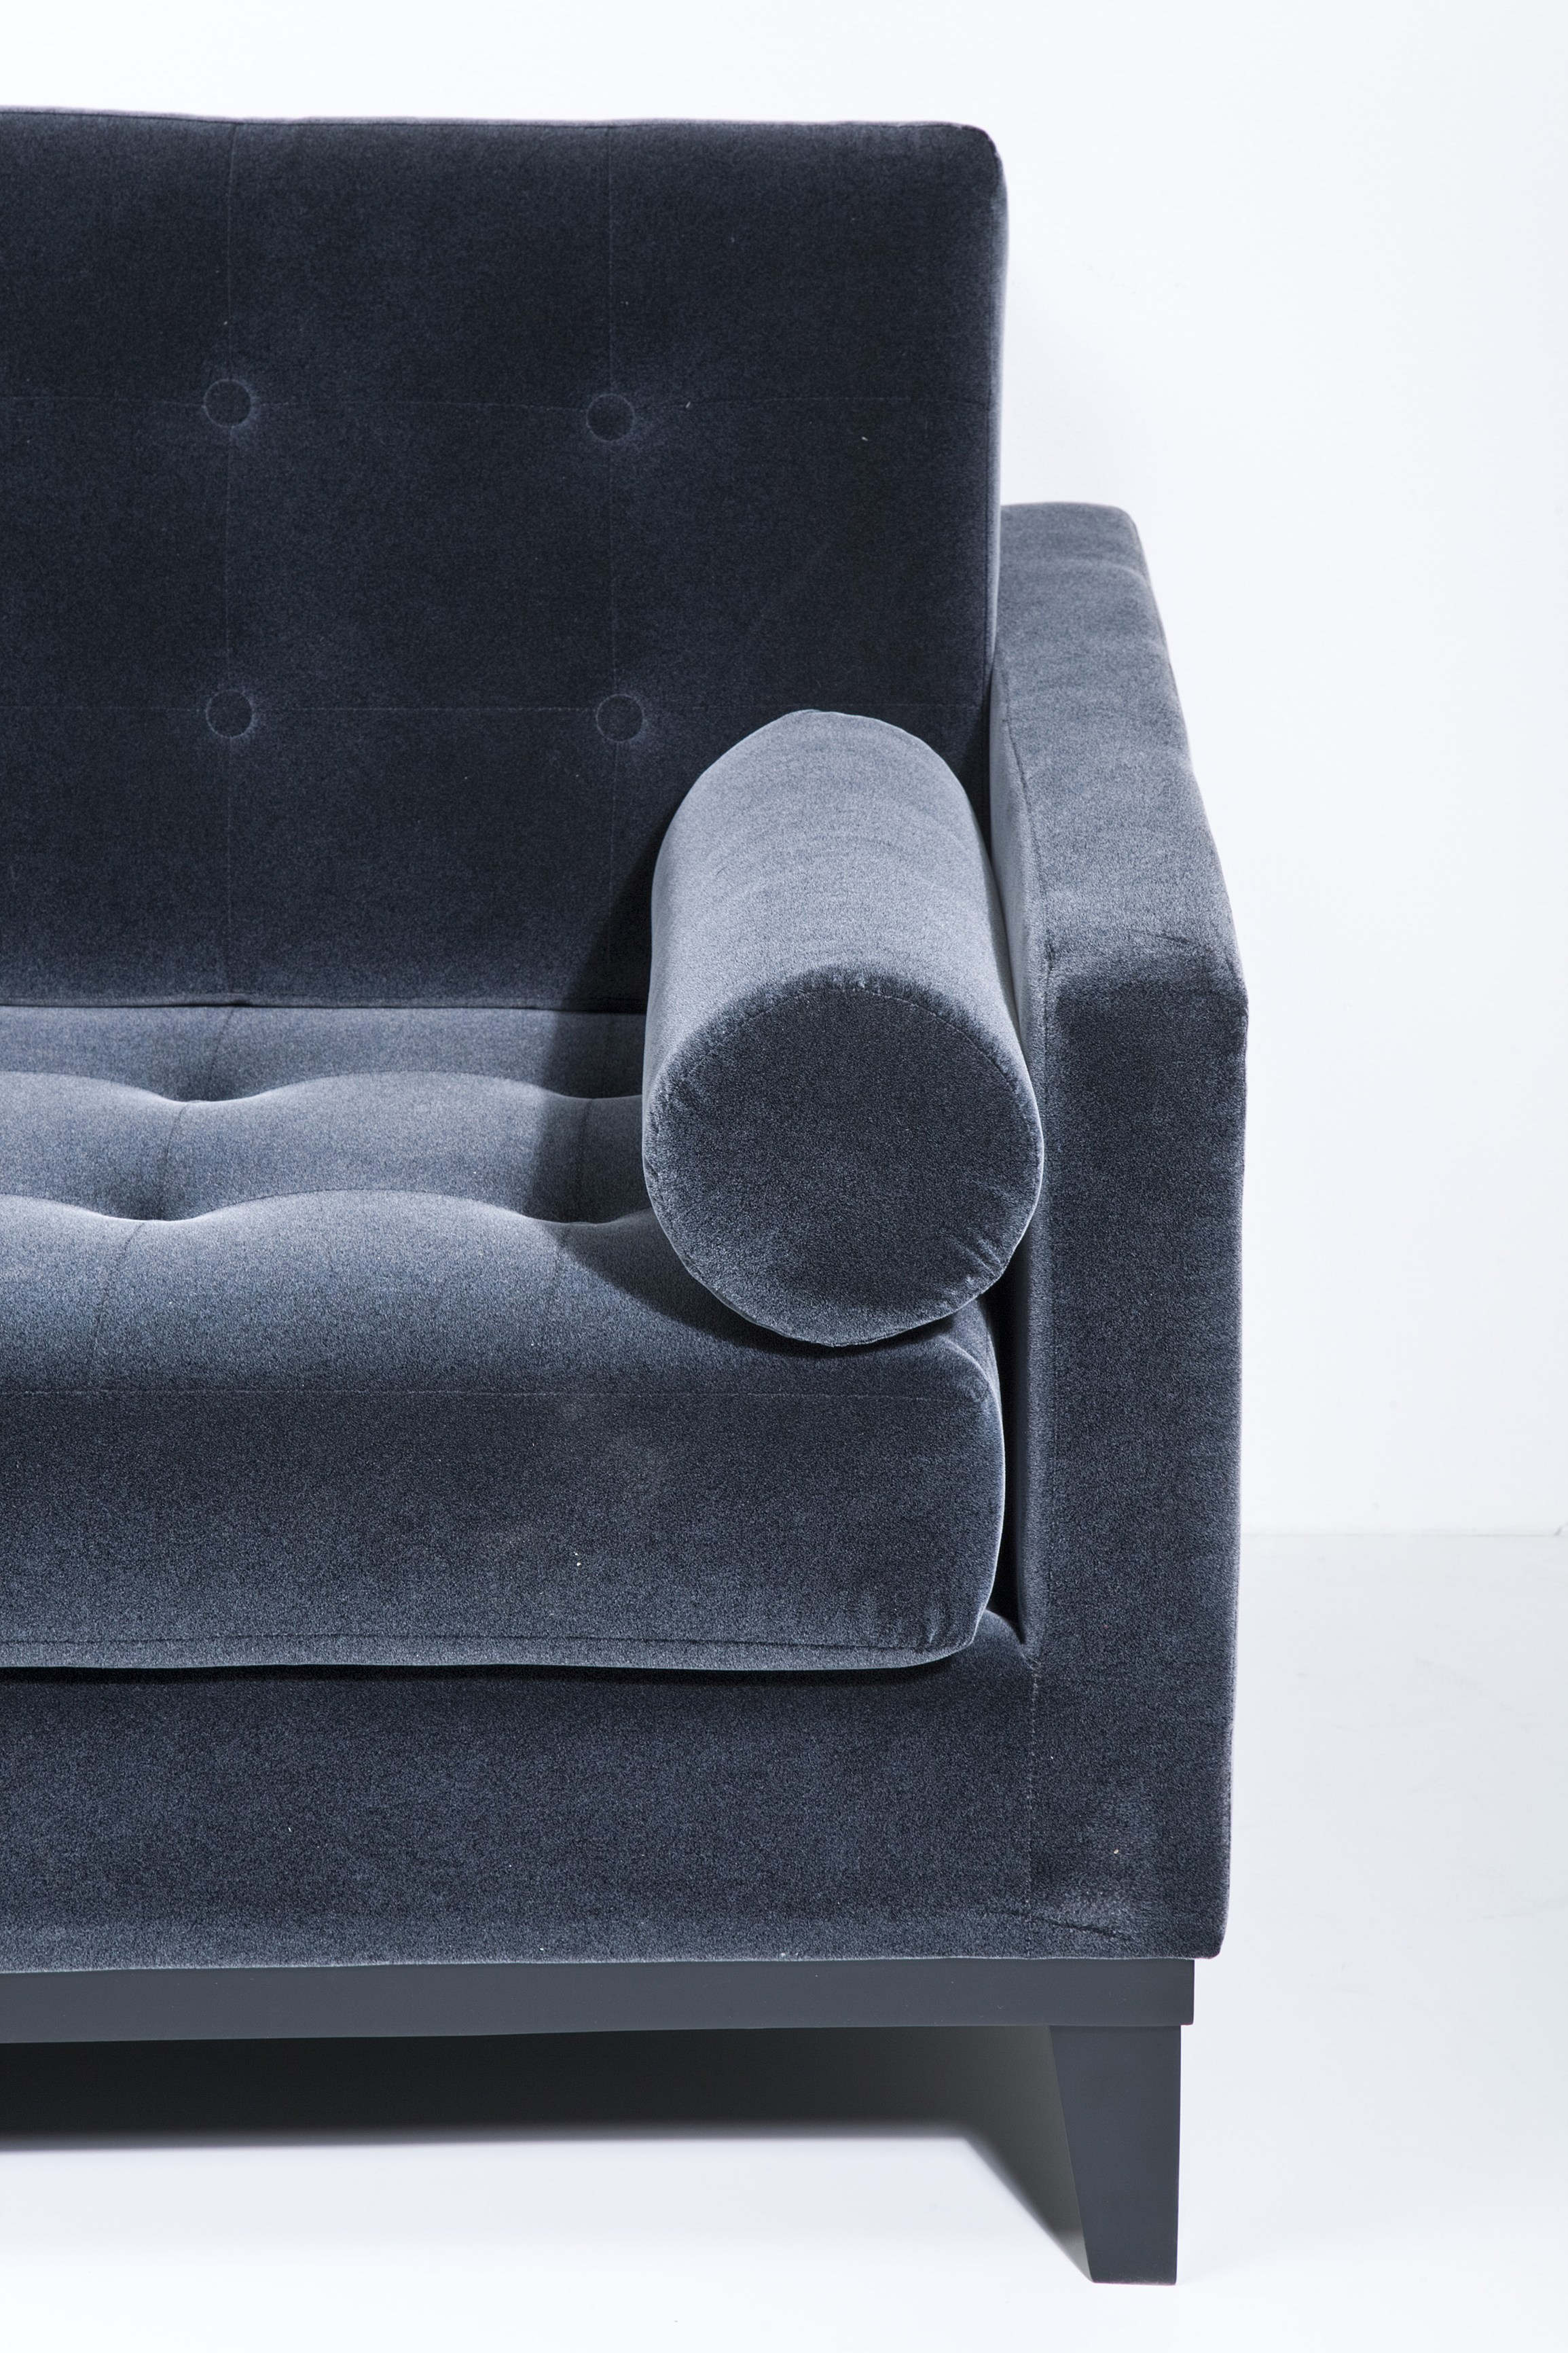 3 seater fabric sofa grey leather for india casino dark by kare design